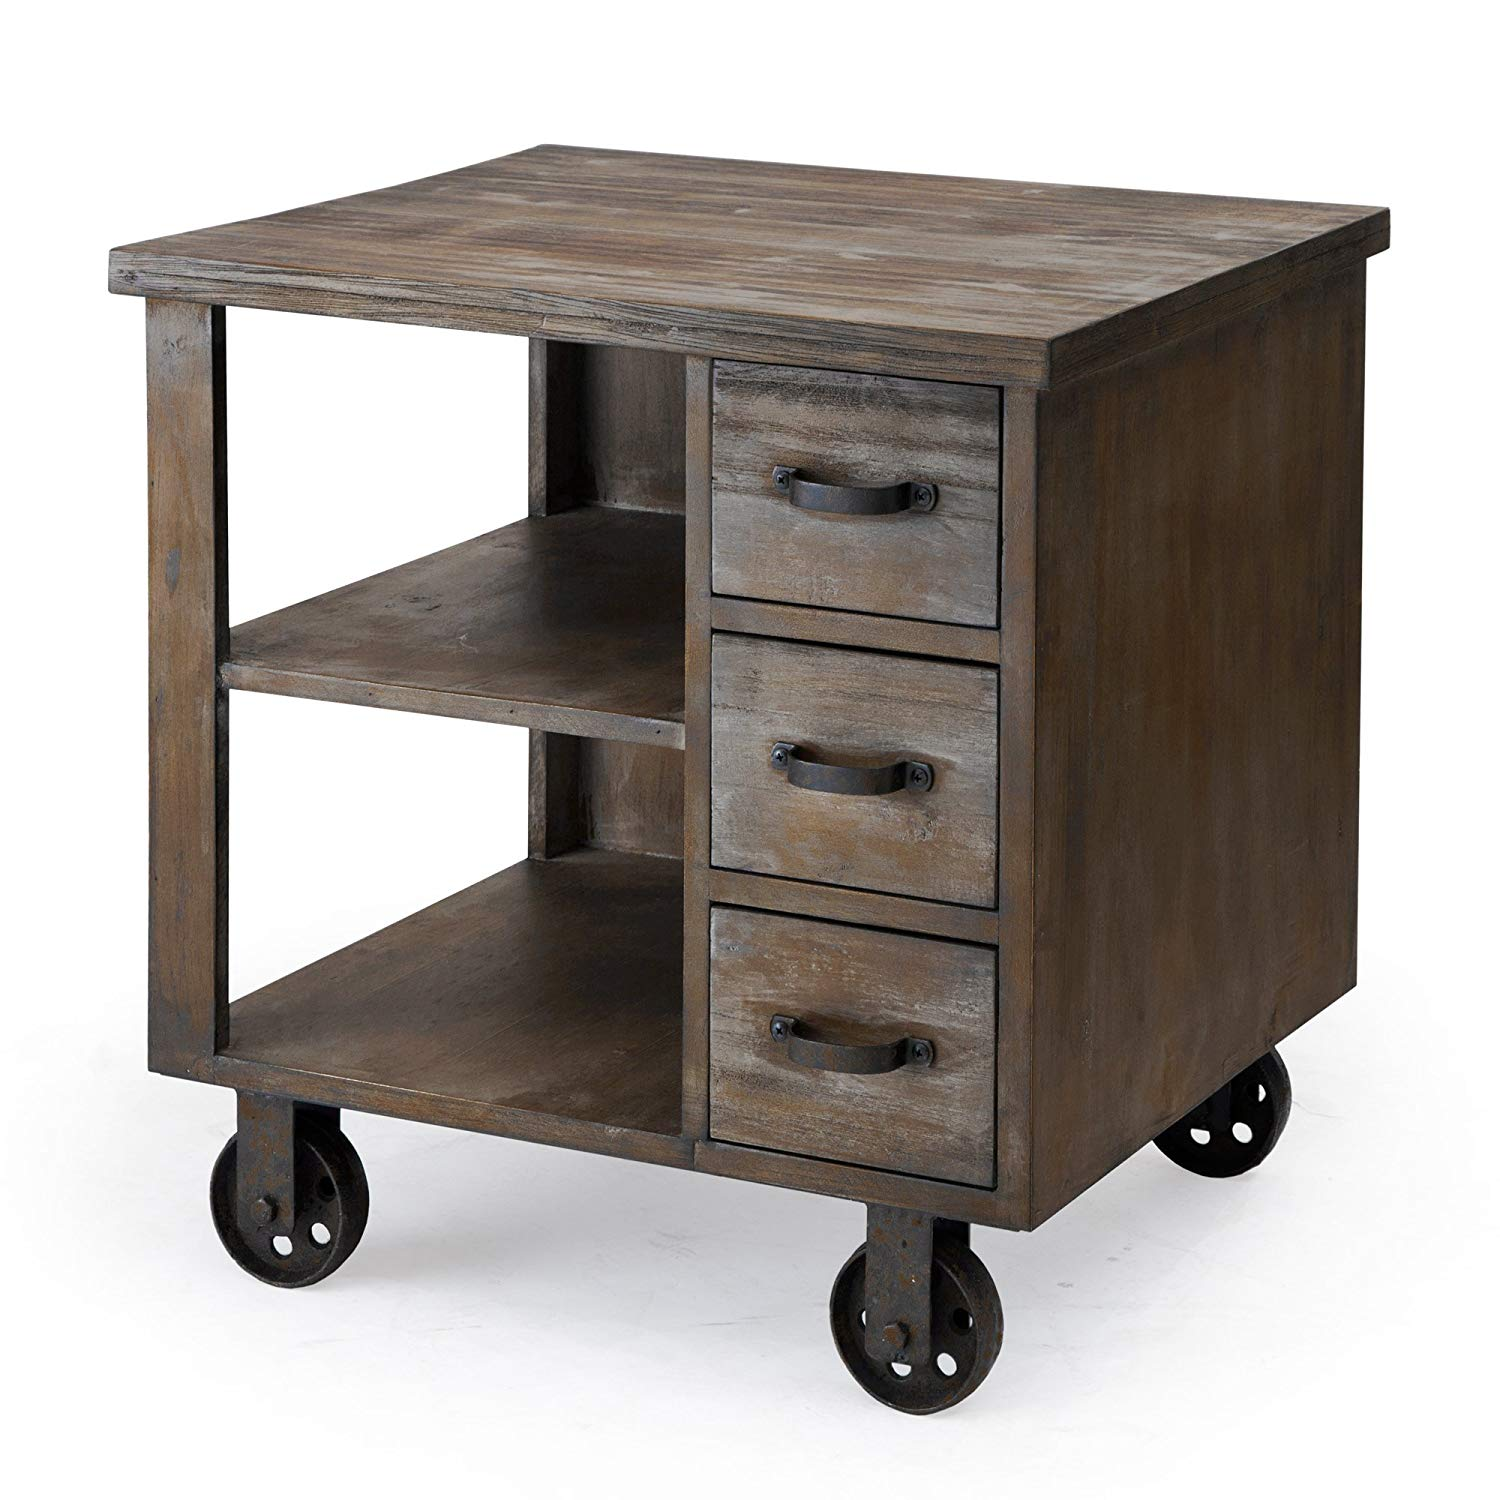 madison park cirque accent end table non moveable with wheels kitchen dining all marble farmhouse legs interior home decoration clear acrylic trunk coffee round oak entry